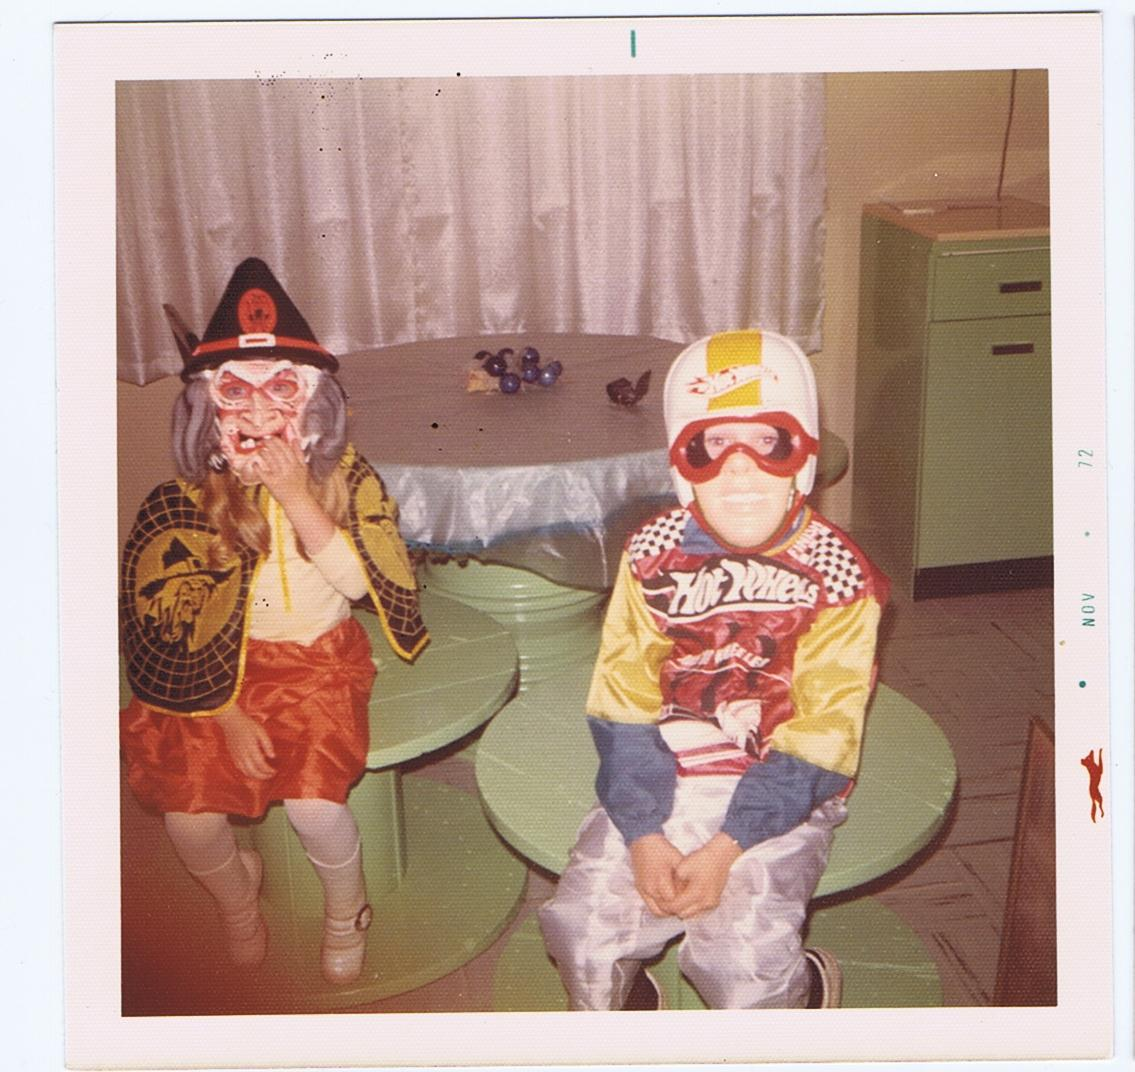 Kids in Halloween costumes, 1972